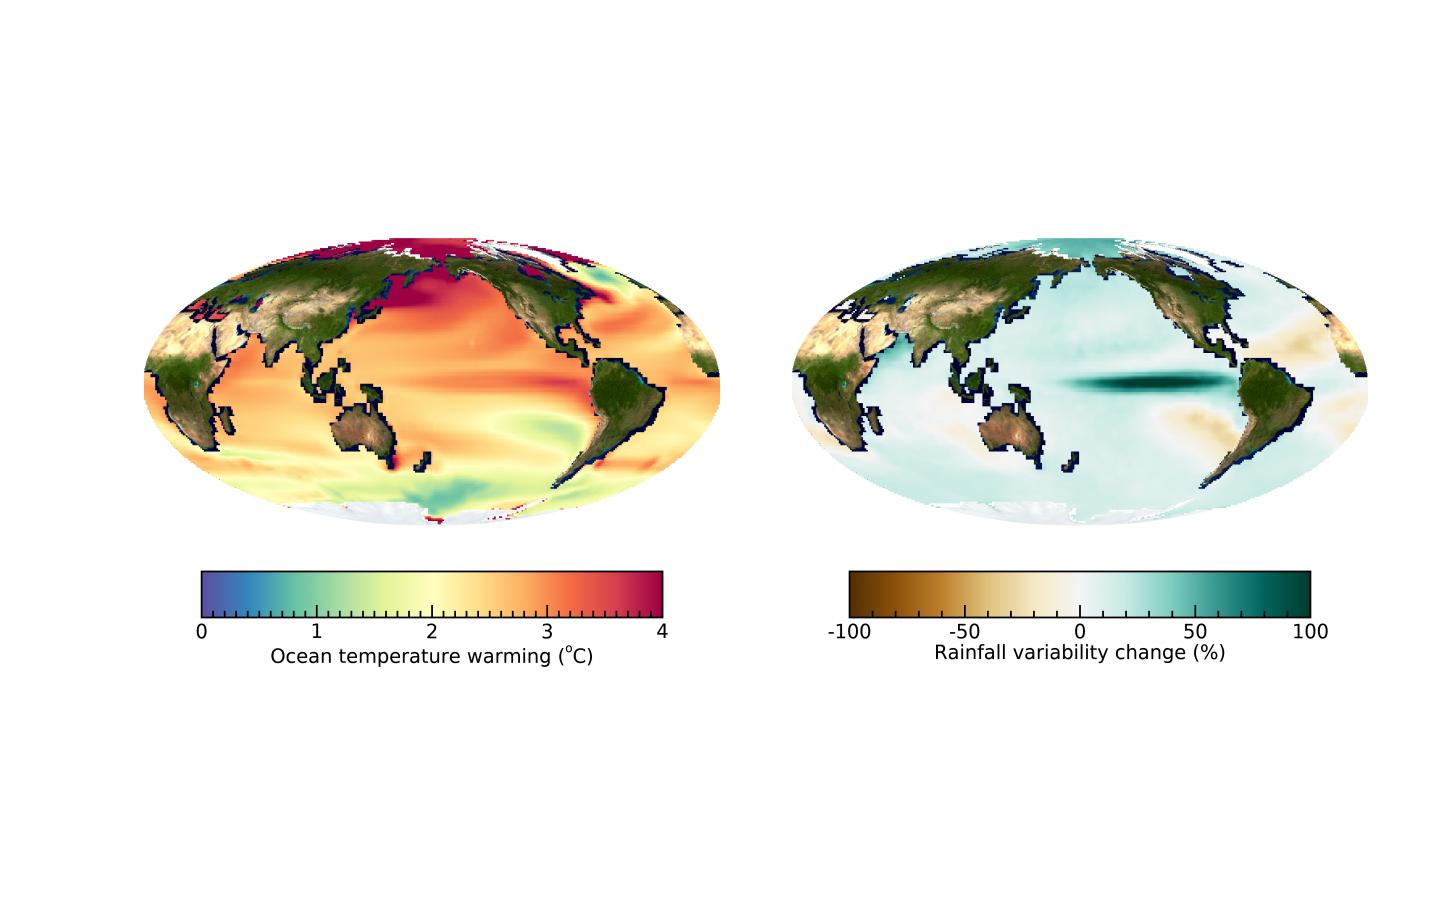 Global ocean warming pattern and change in year-to-year rainfall variability